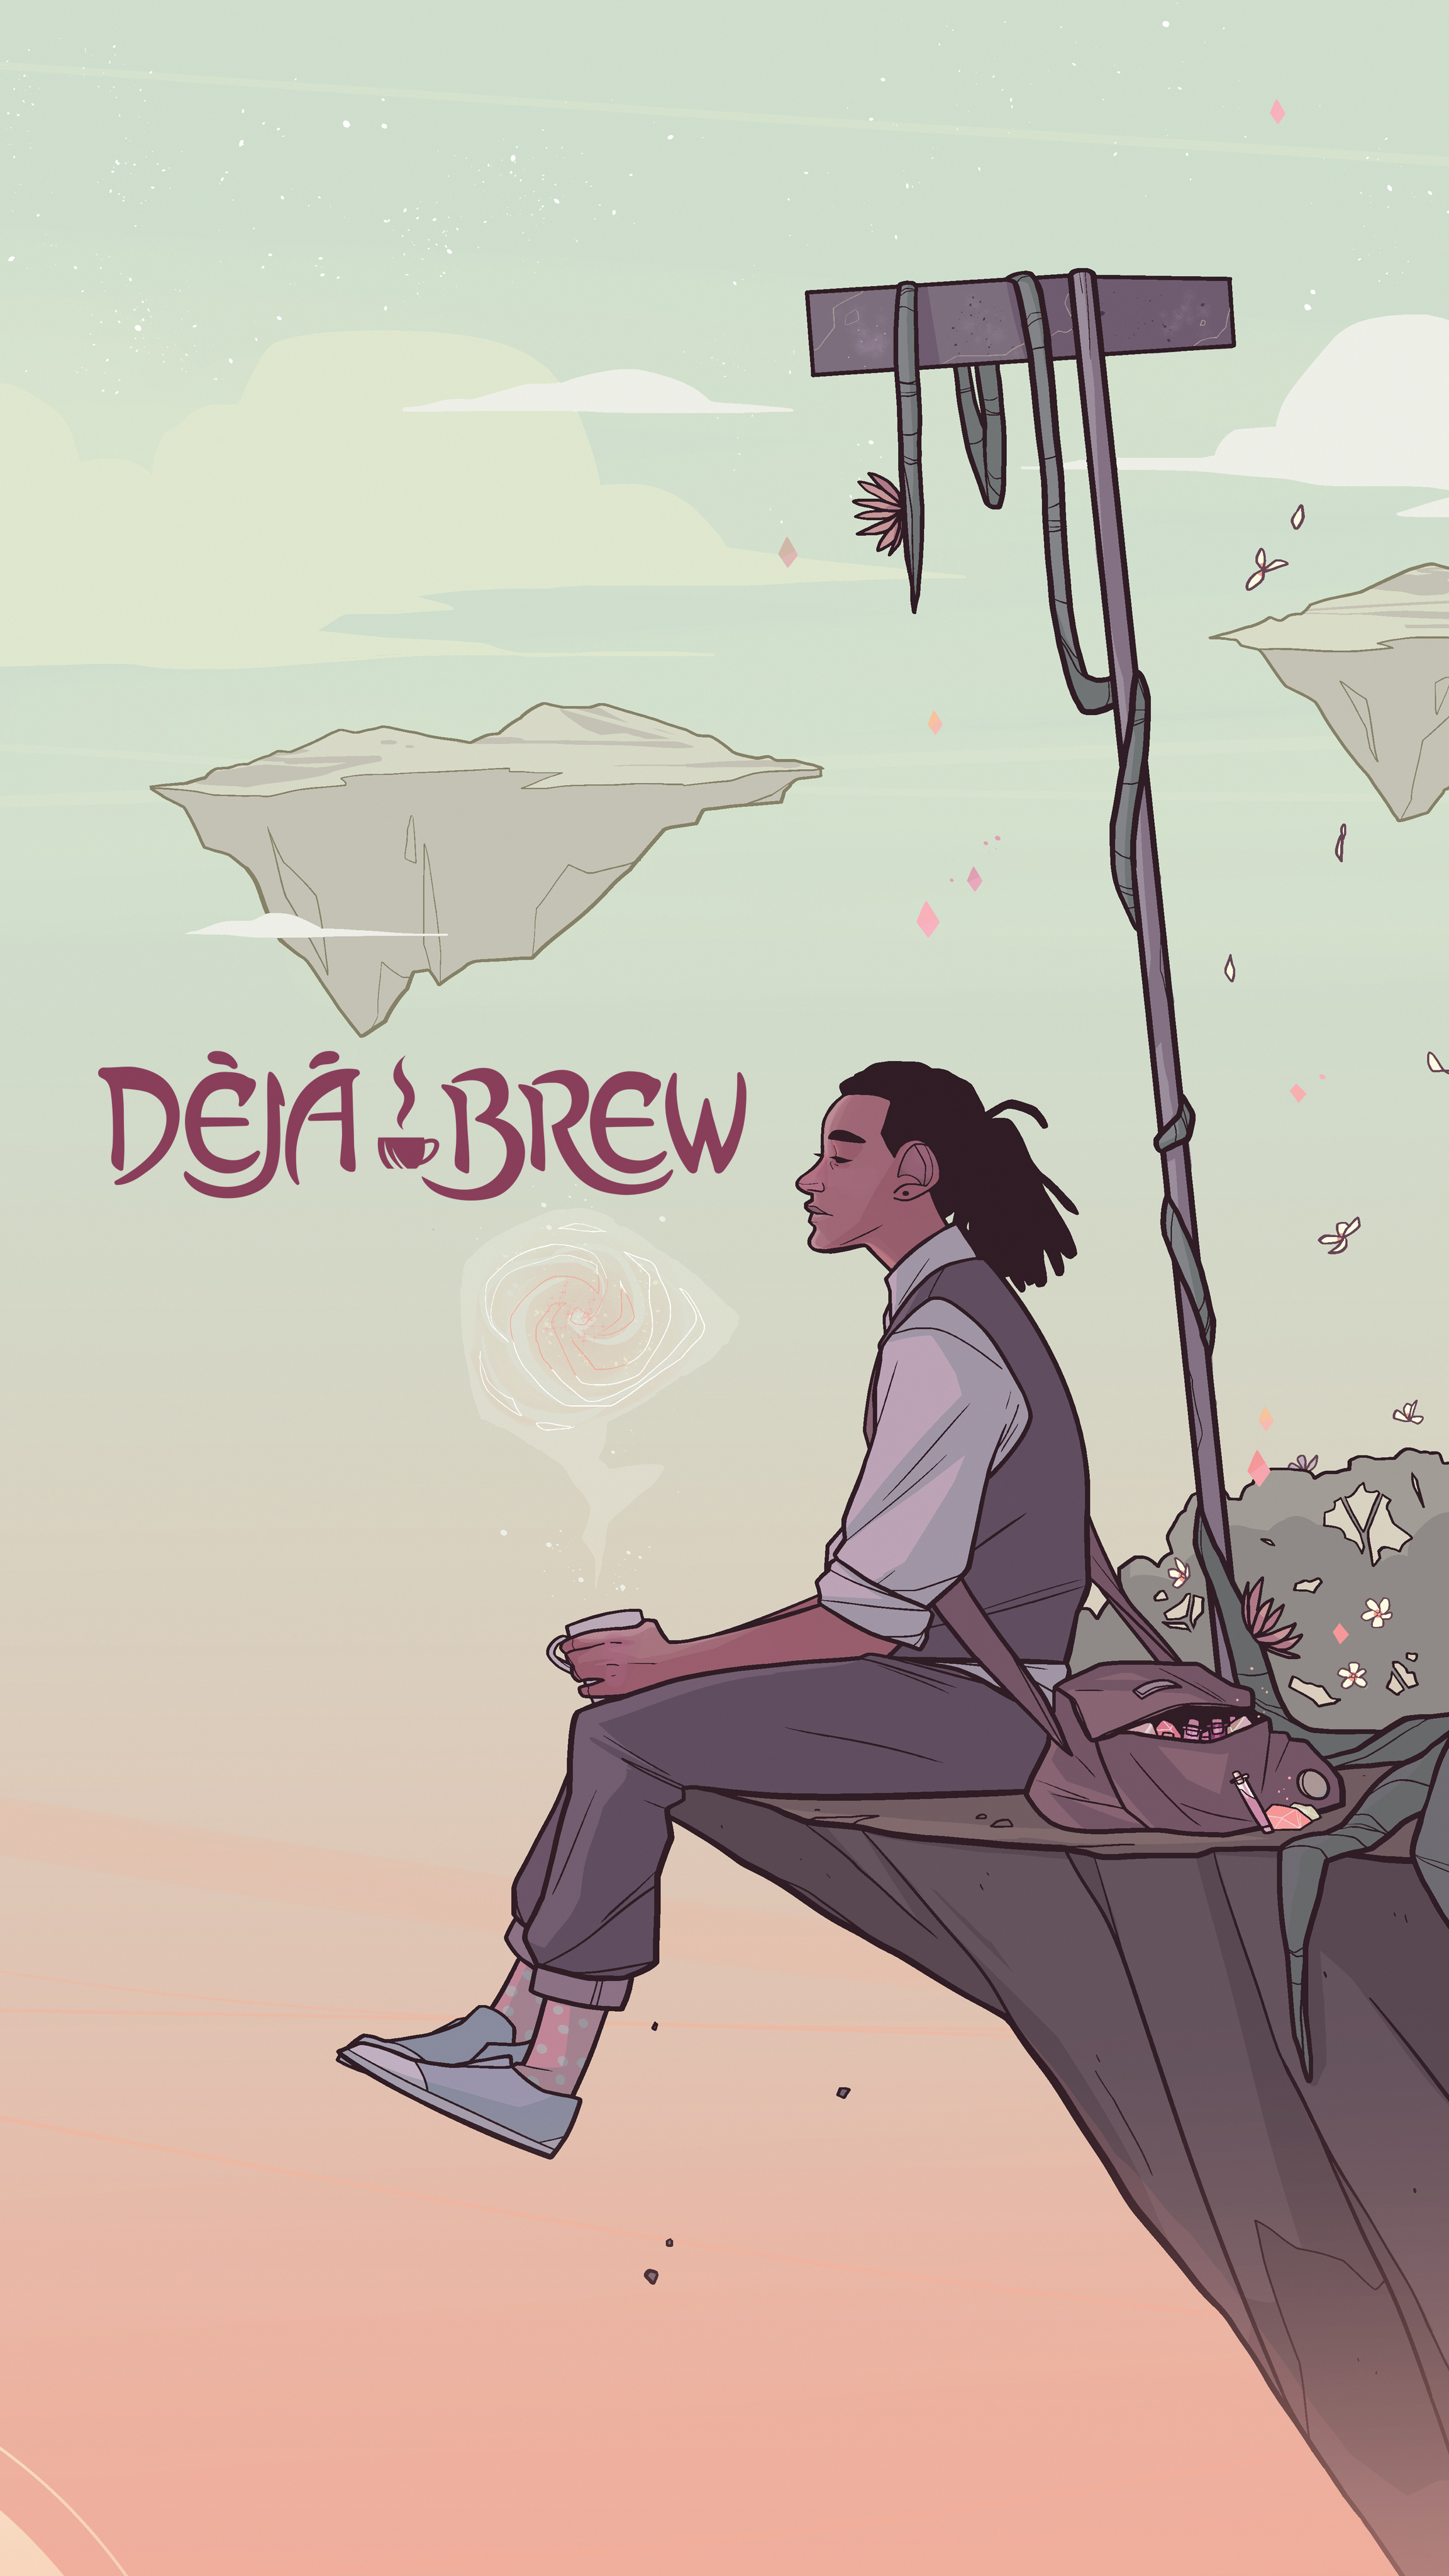 - DÉJÀ BREW - writer(Stela, 2016)2017 Eisner Award nomineeA fresh brew of coffee or a pot of tea is not all it seems at Bijou, where Tobias, an expelled witch academy student, works.